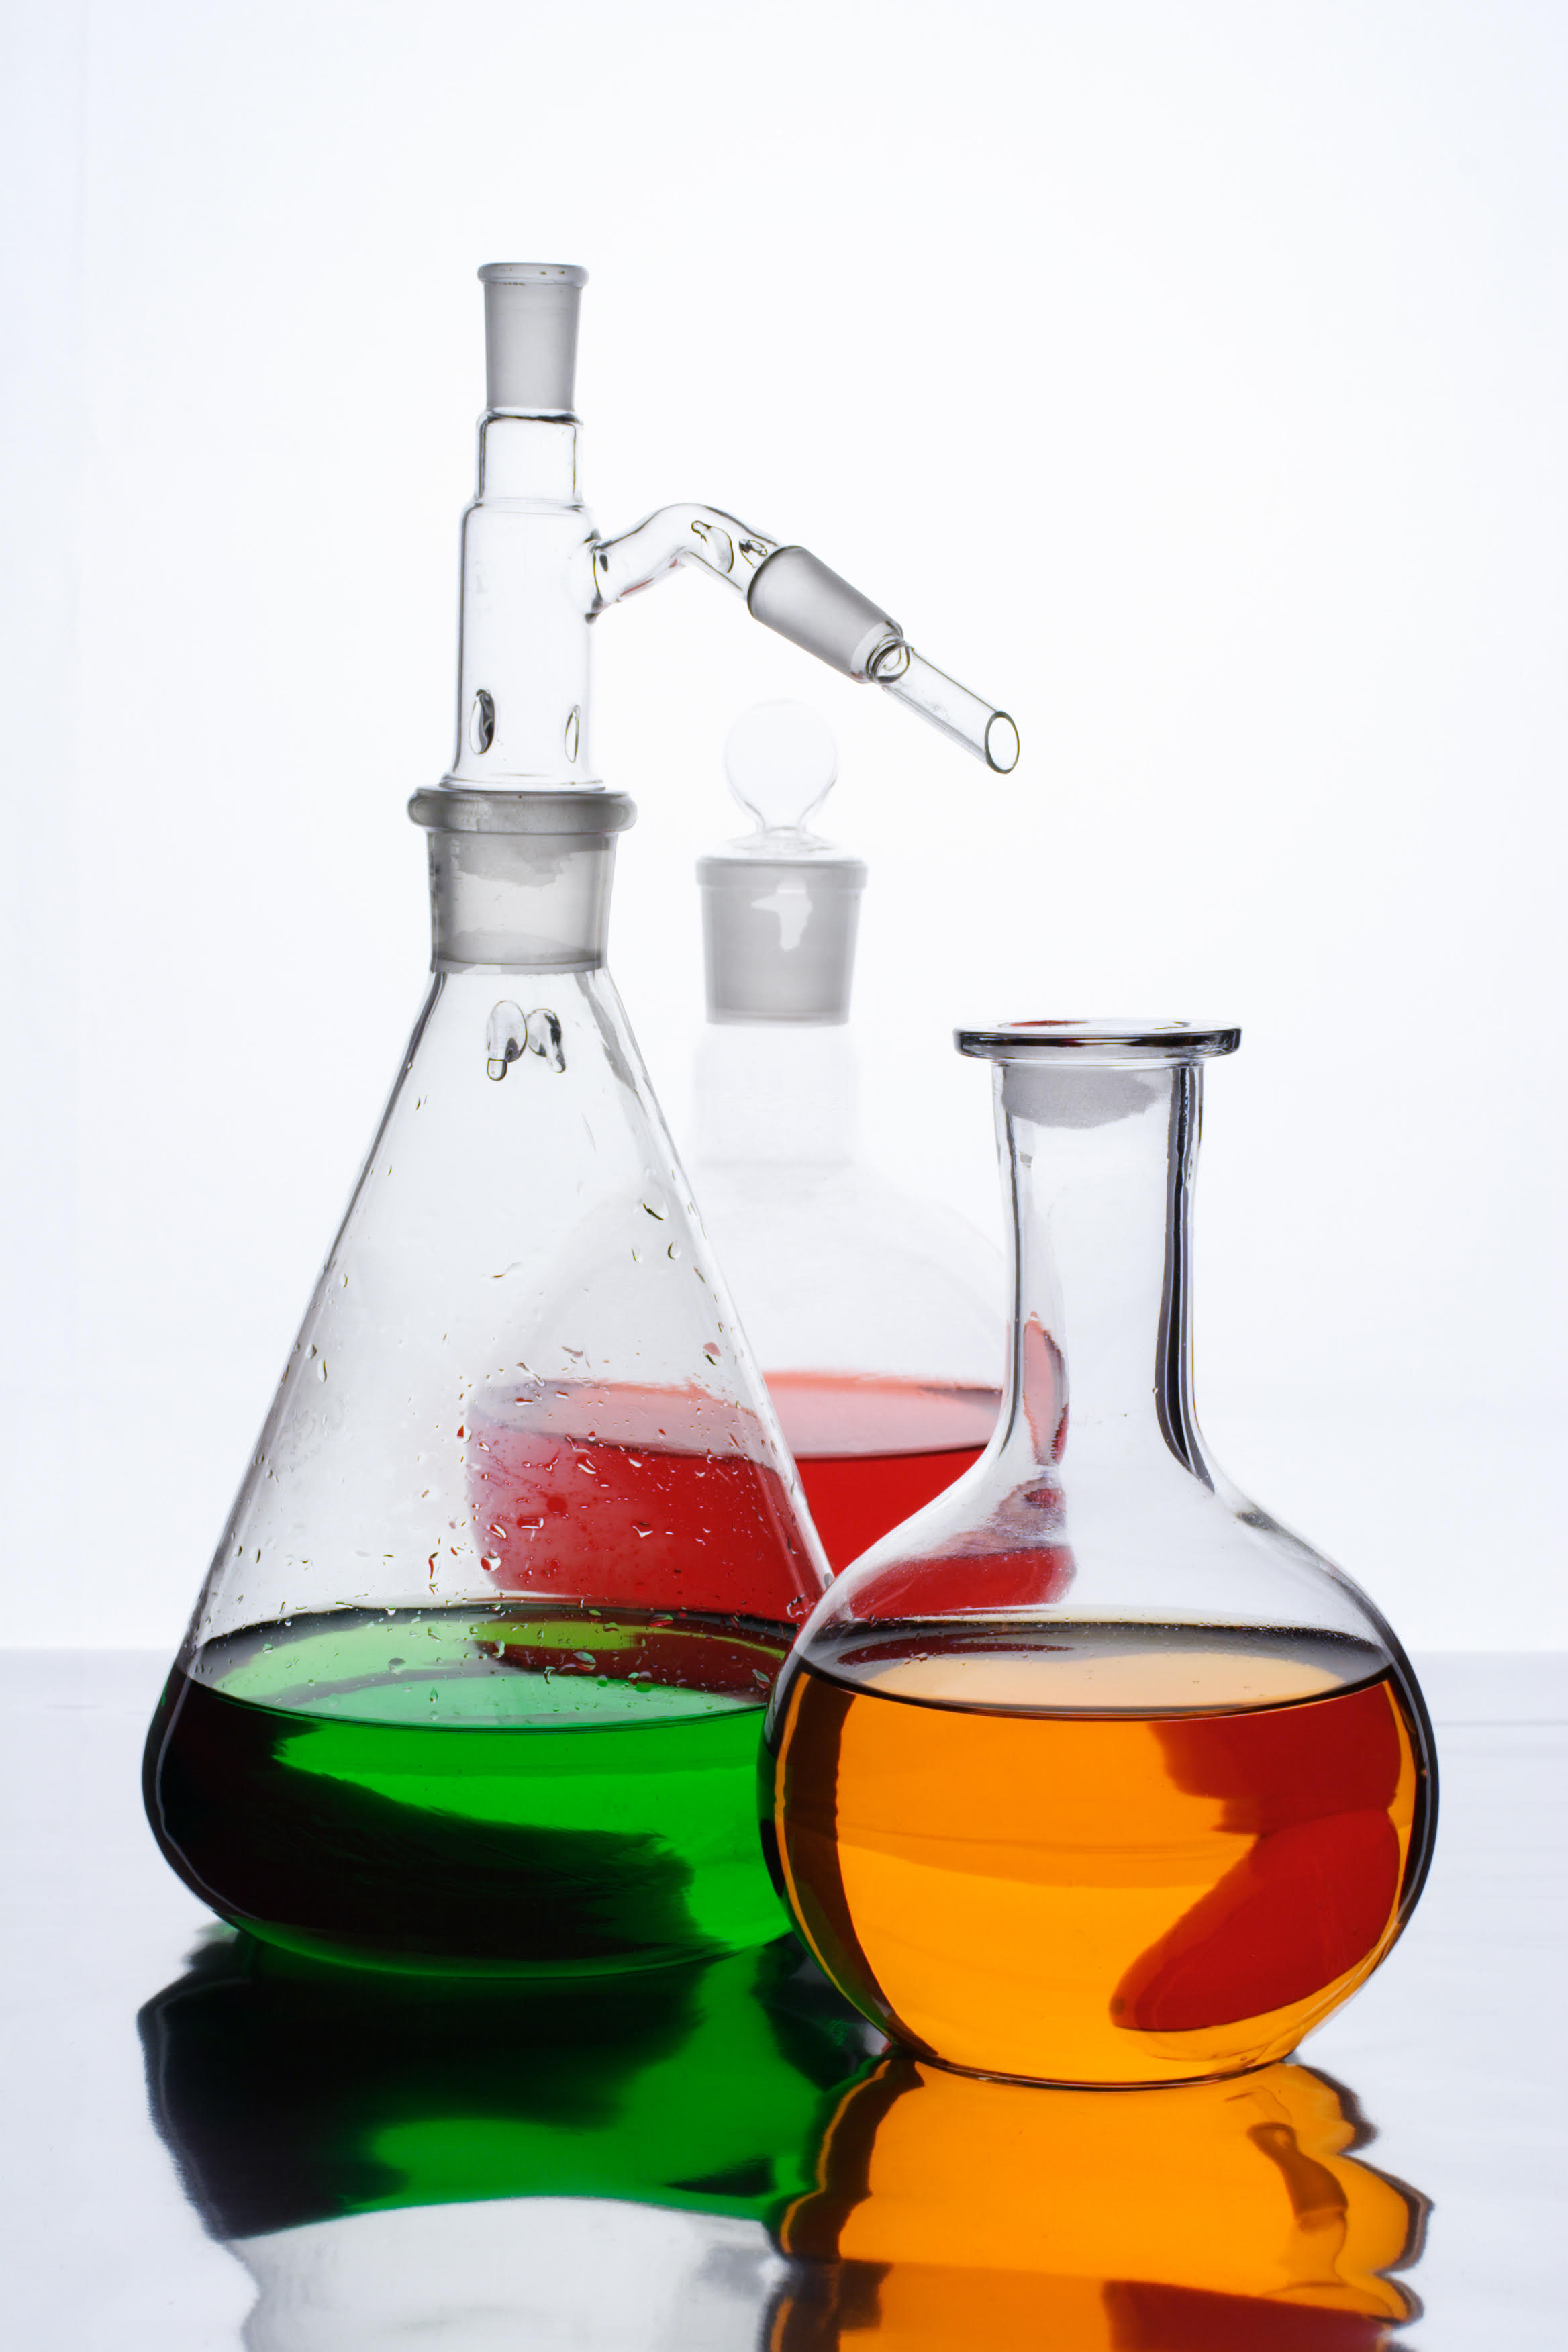 Liquid Solvents in Laboratory